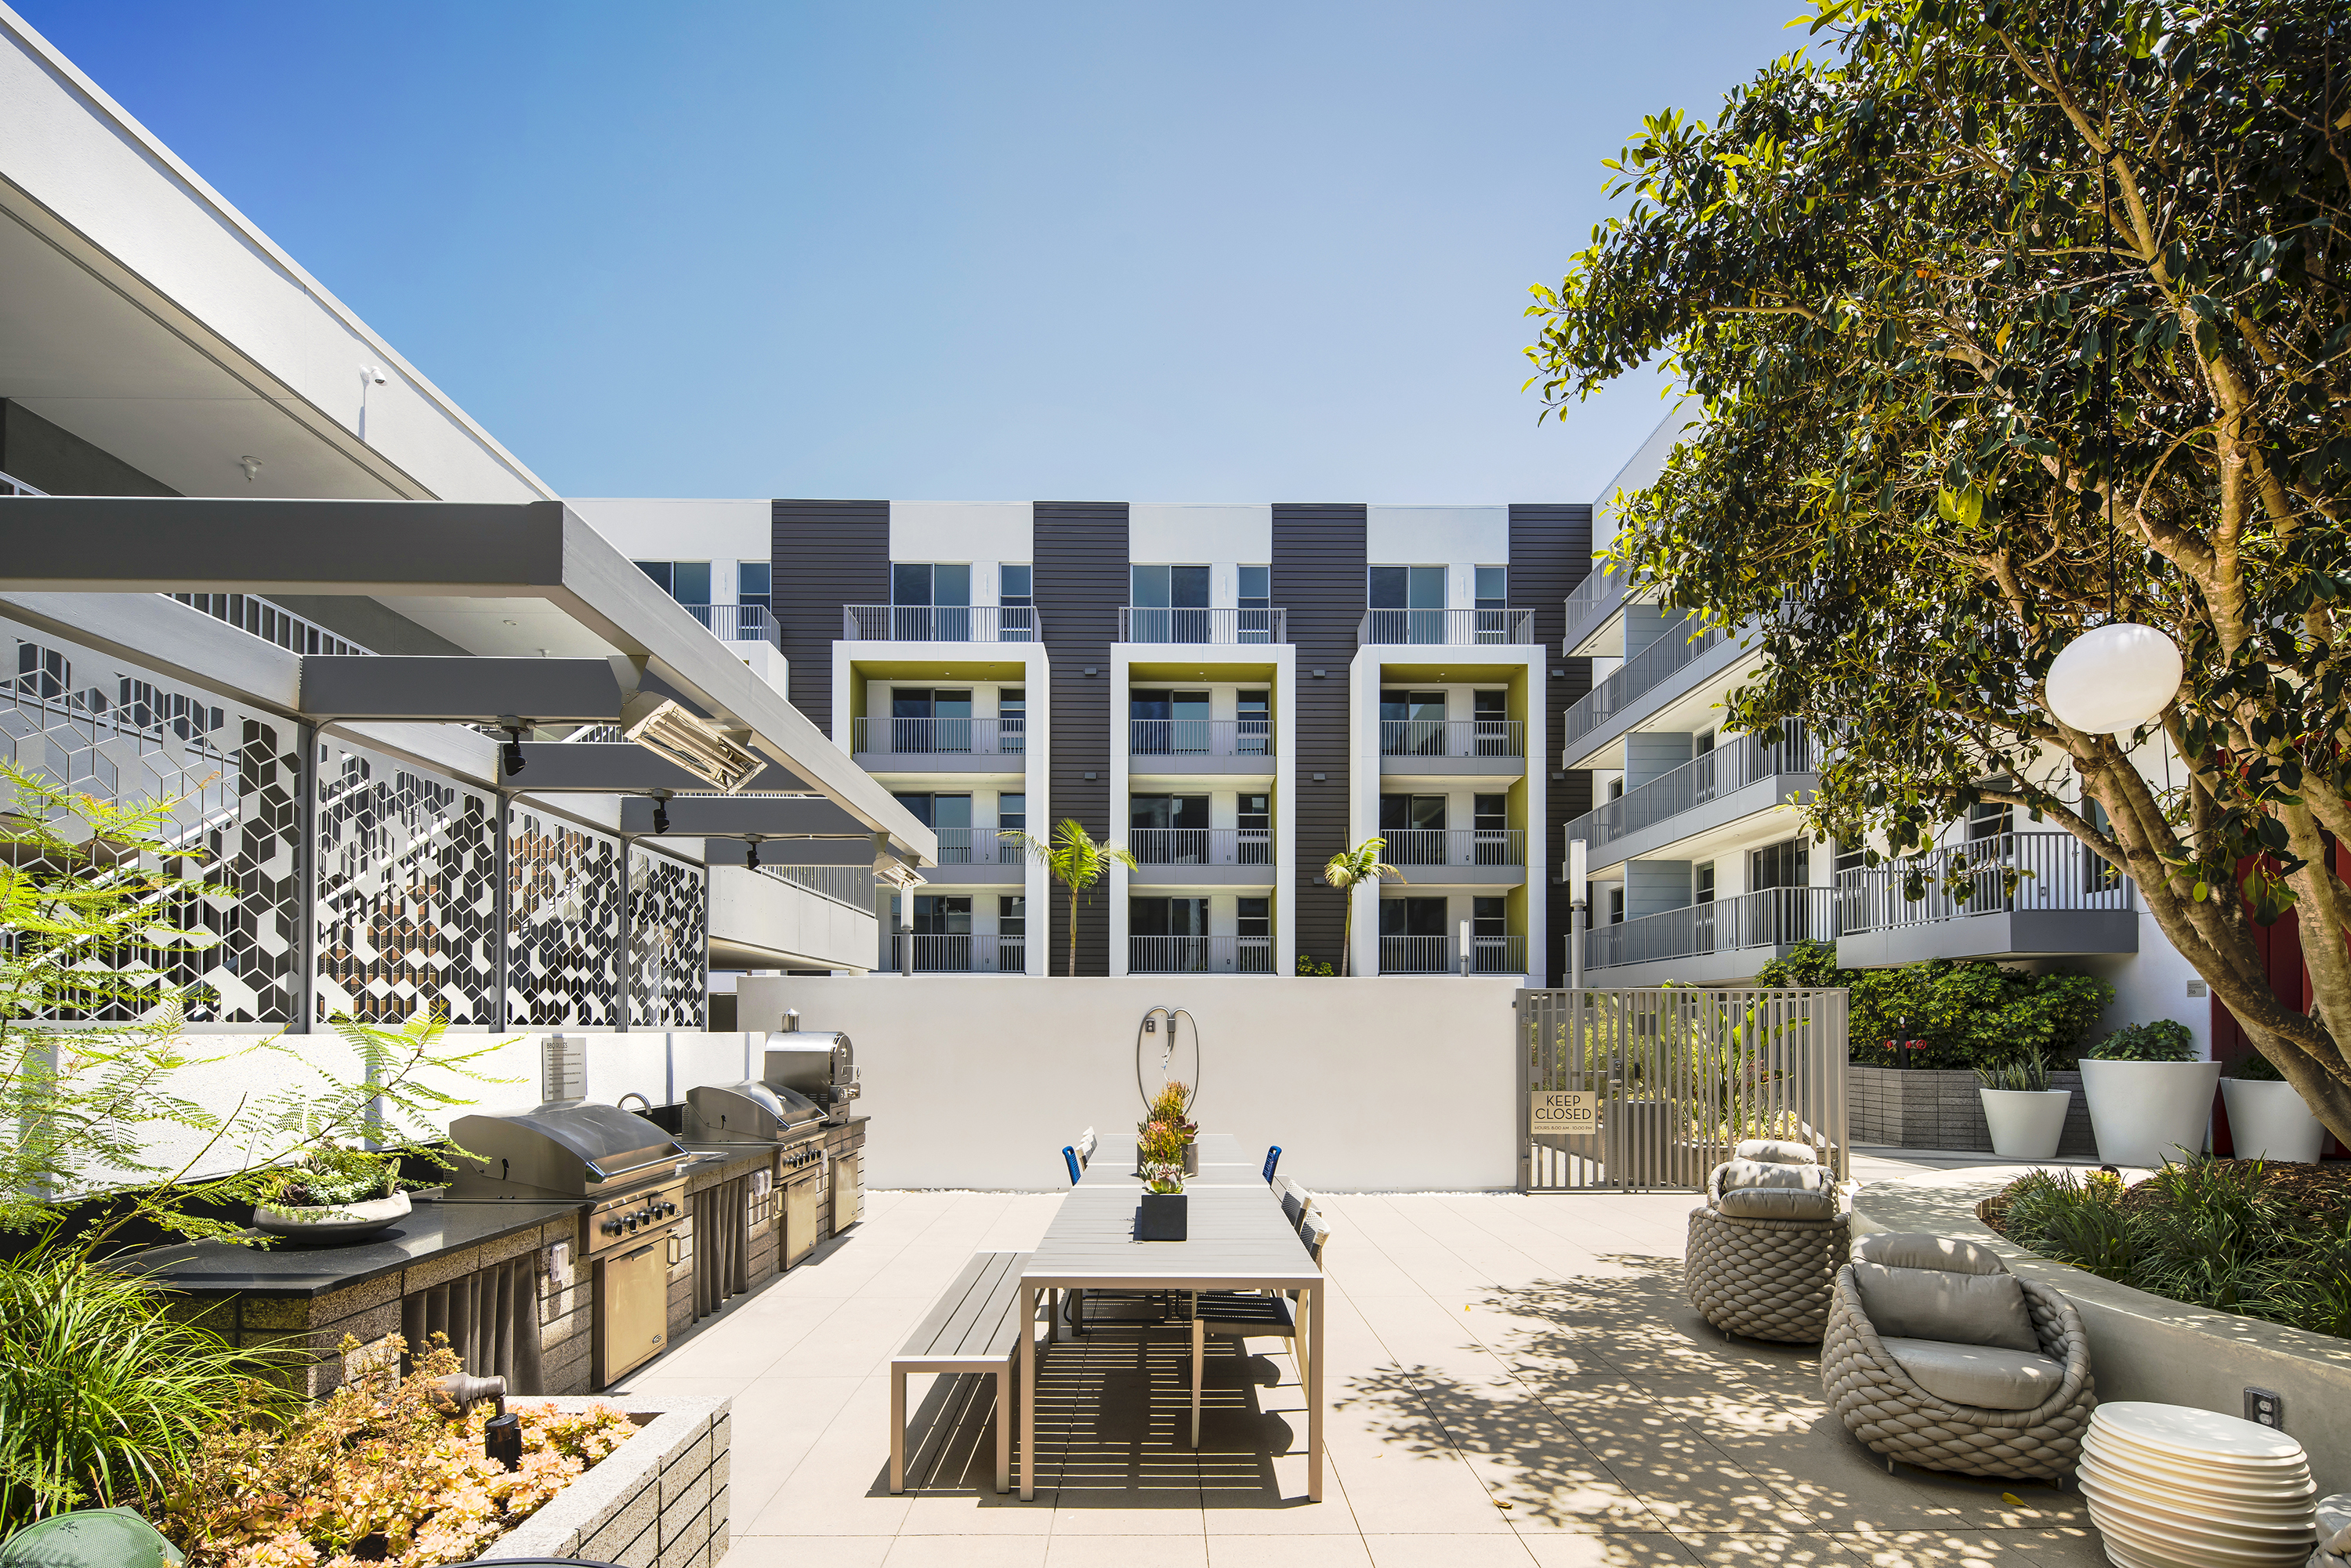 domain west hollywood pricing photos of the neighborhood s newest luxury apartments curbed la. Black Bedroom Furniture Sets. Home Design Ideas